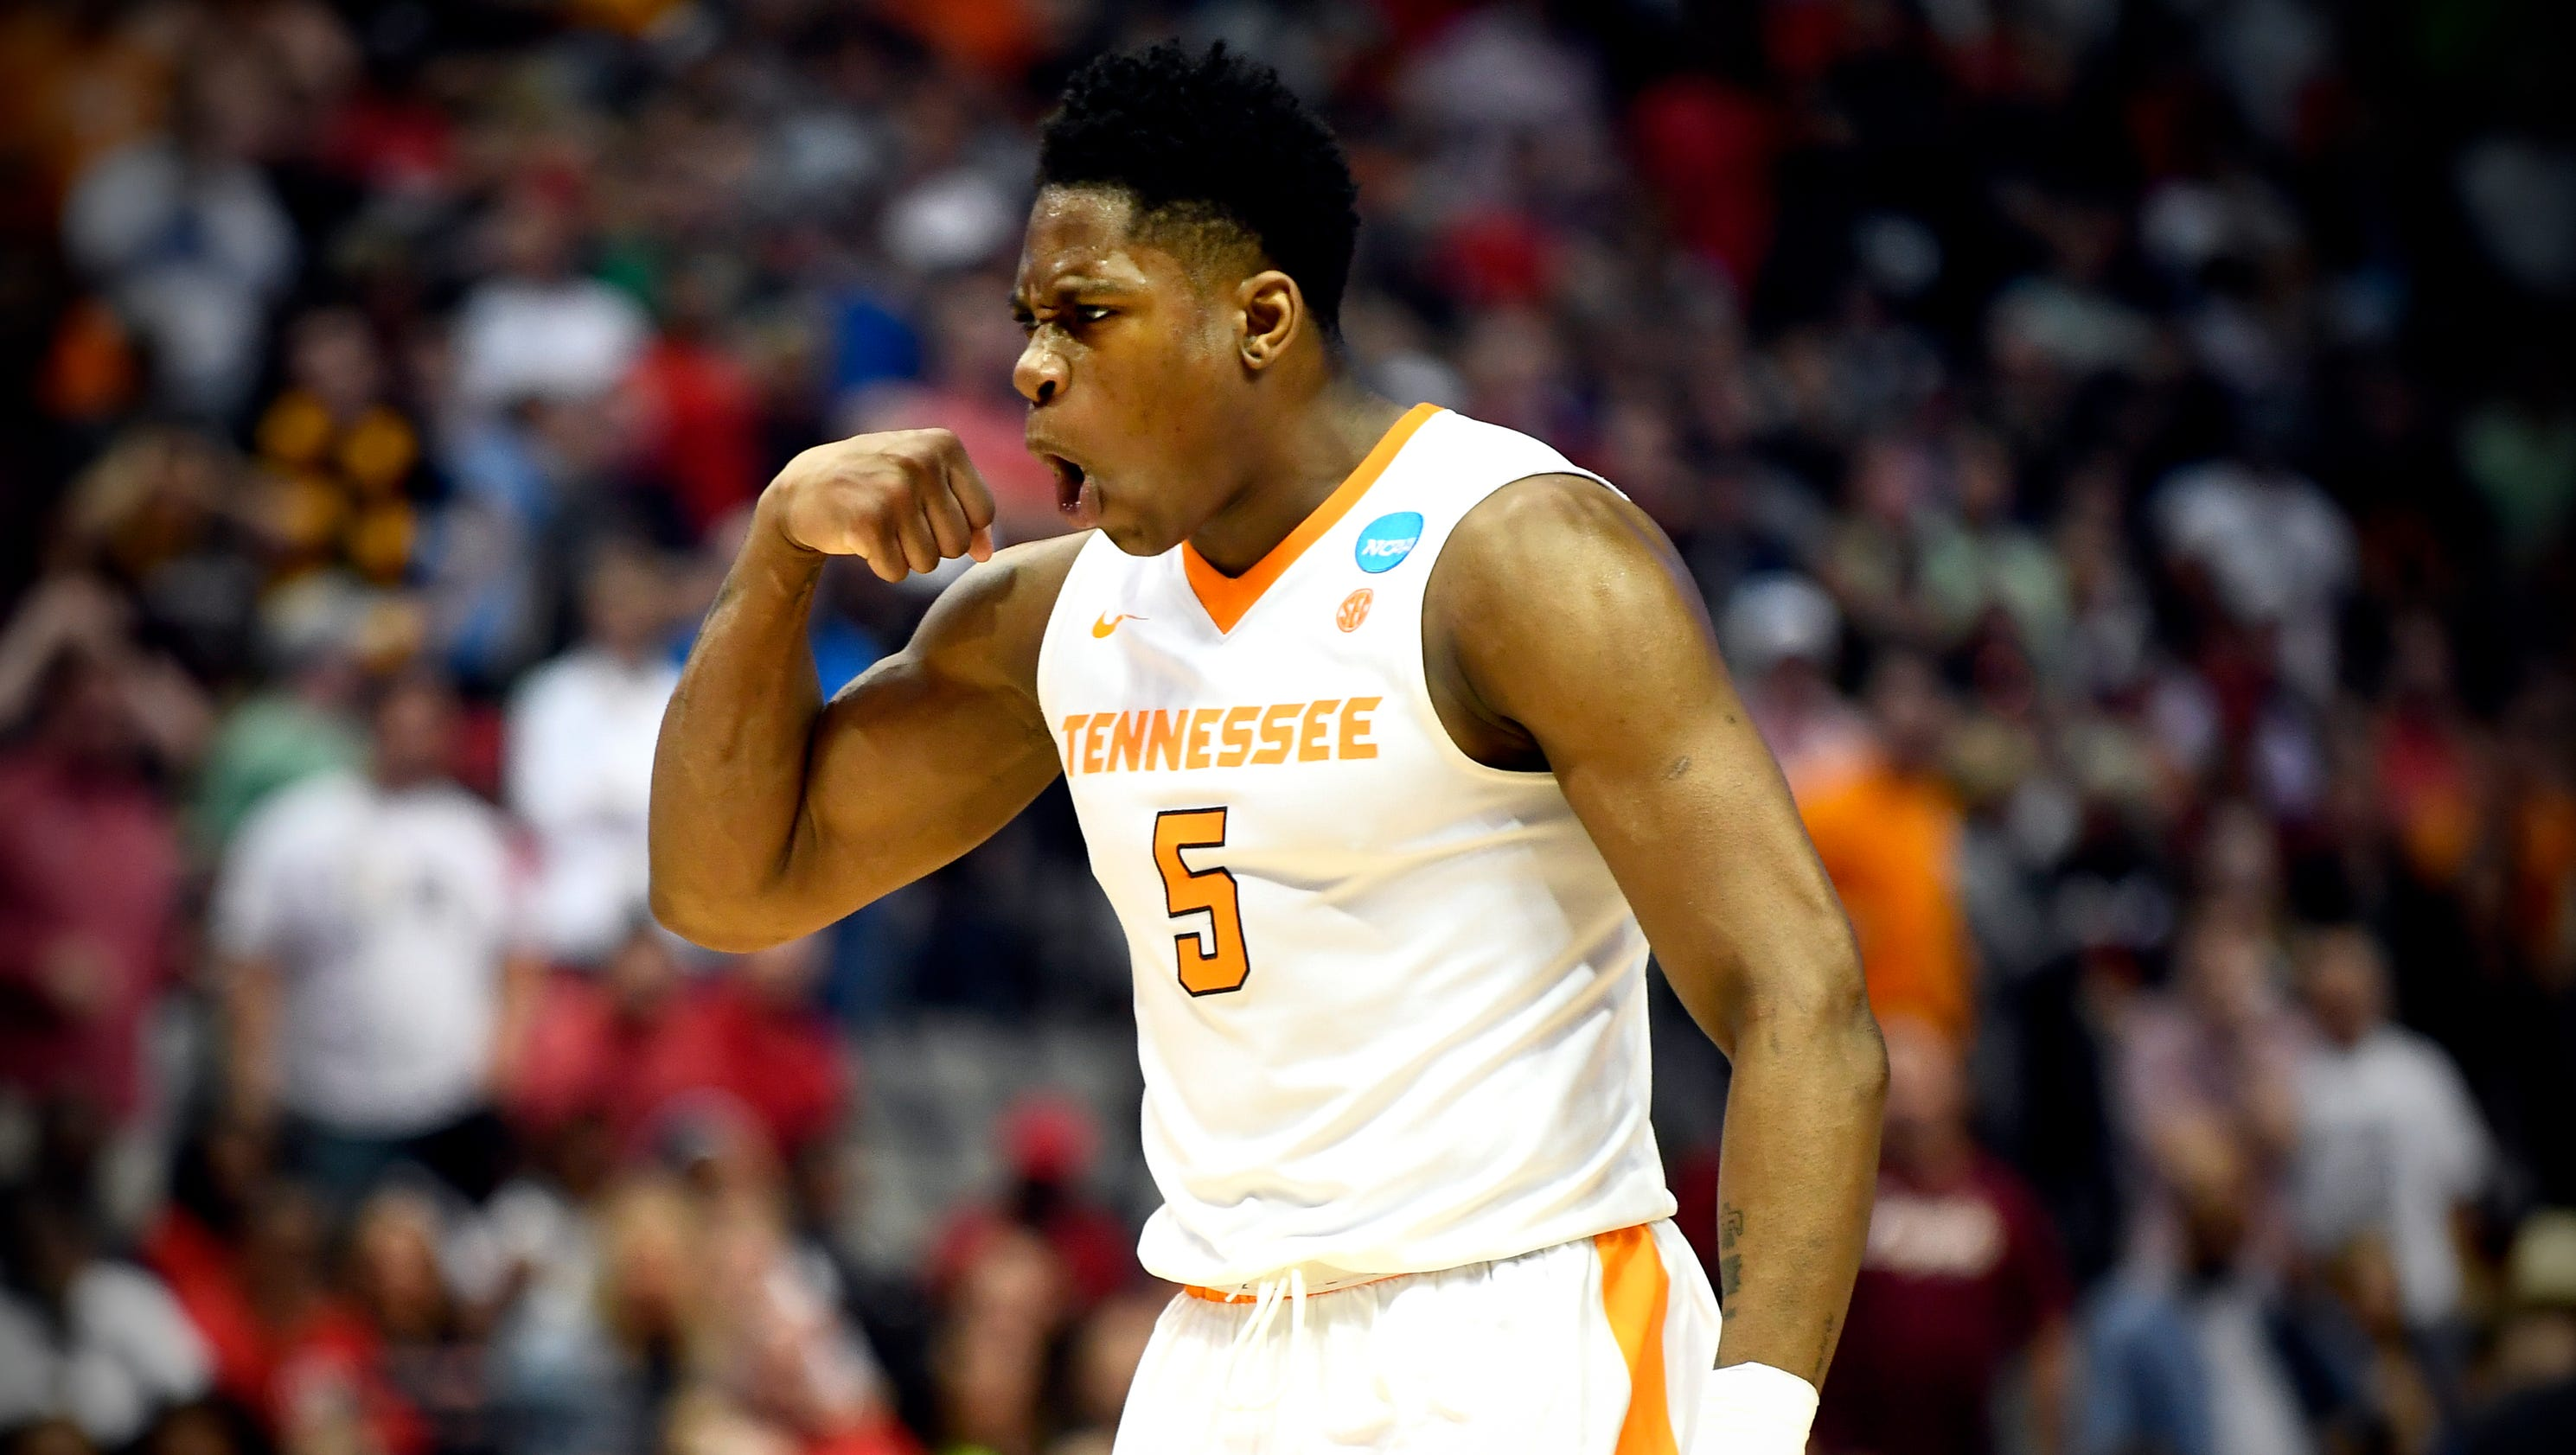 Admiral Schofield returning for senior year with UT Vols ...